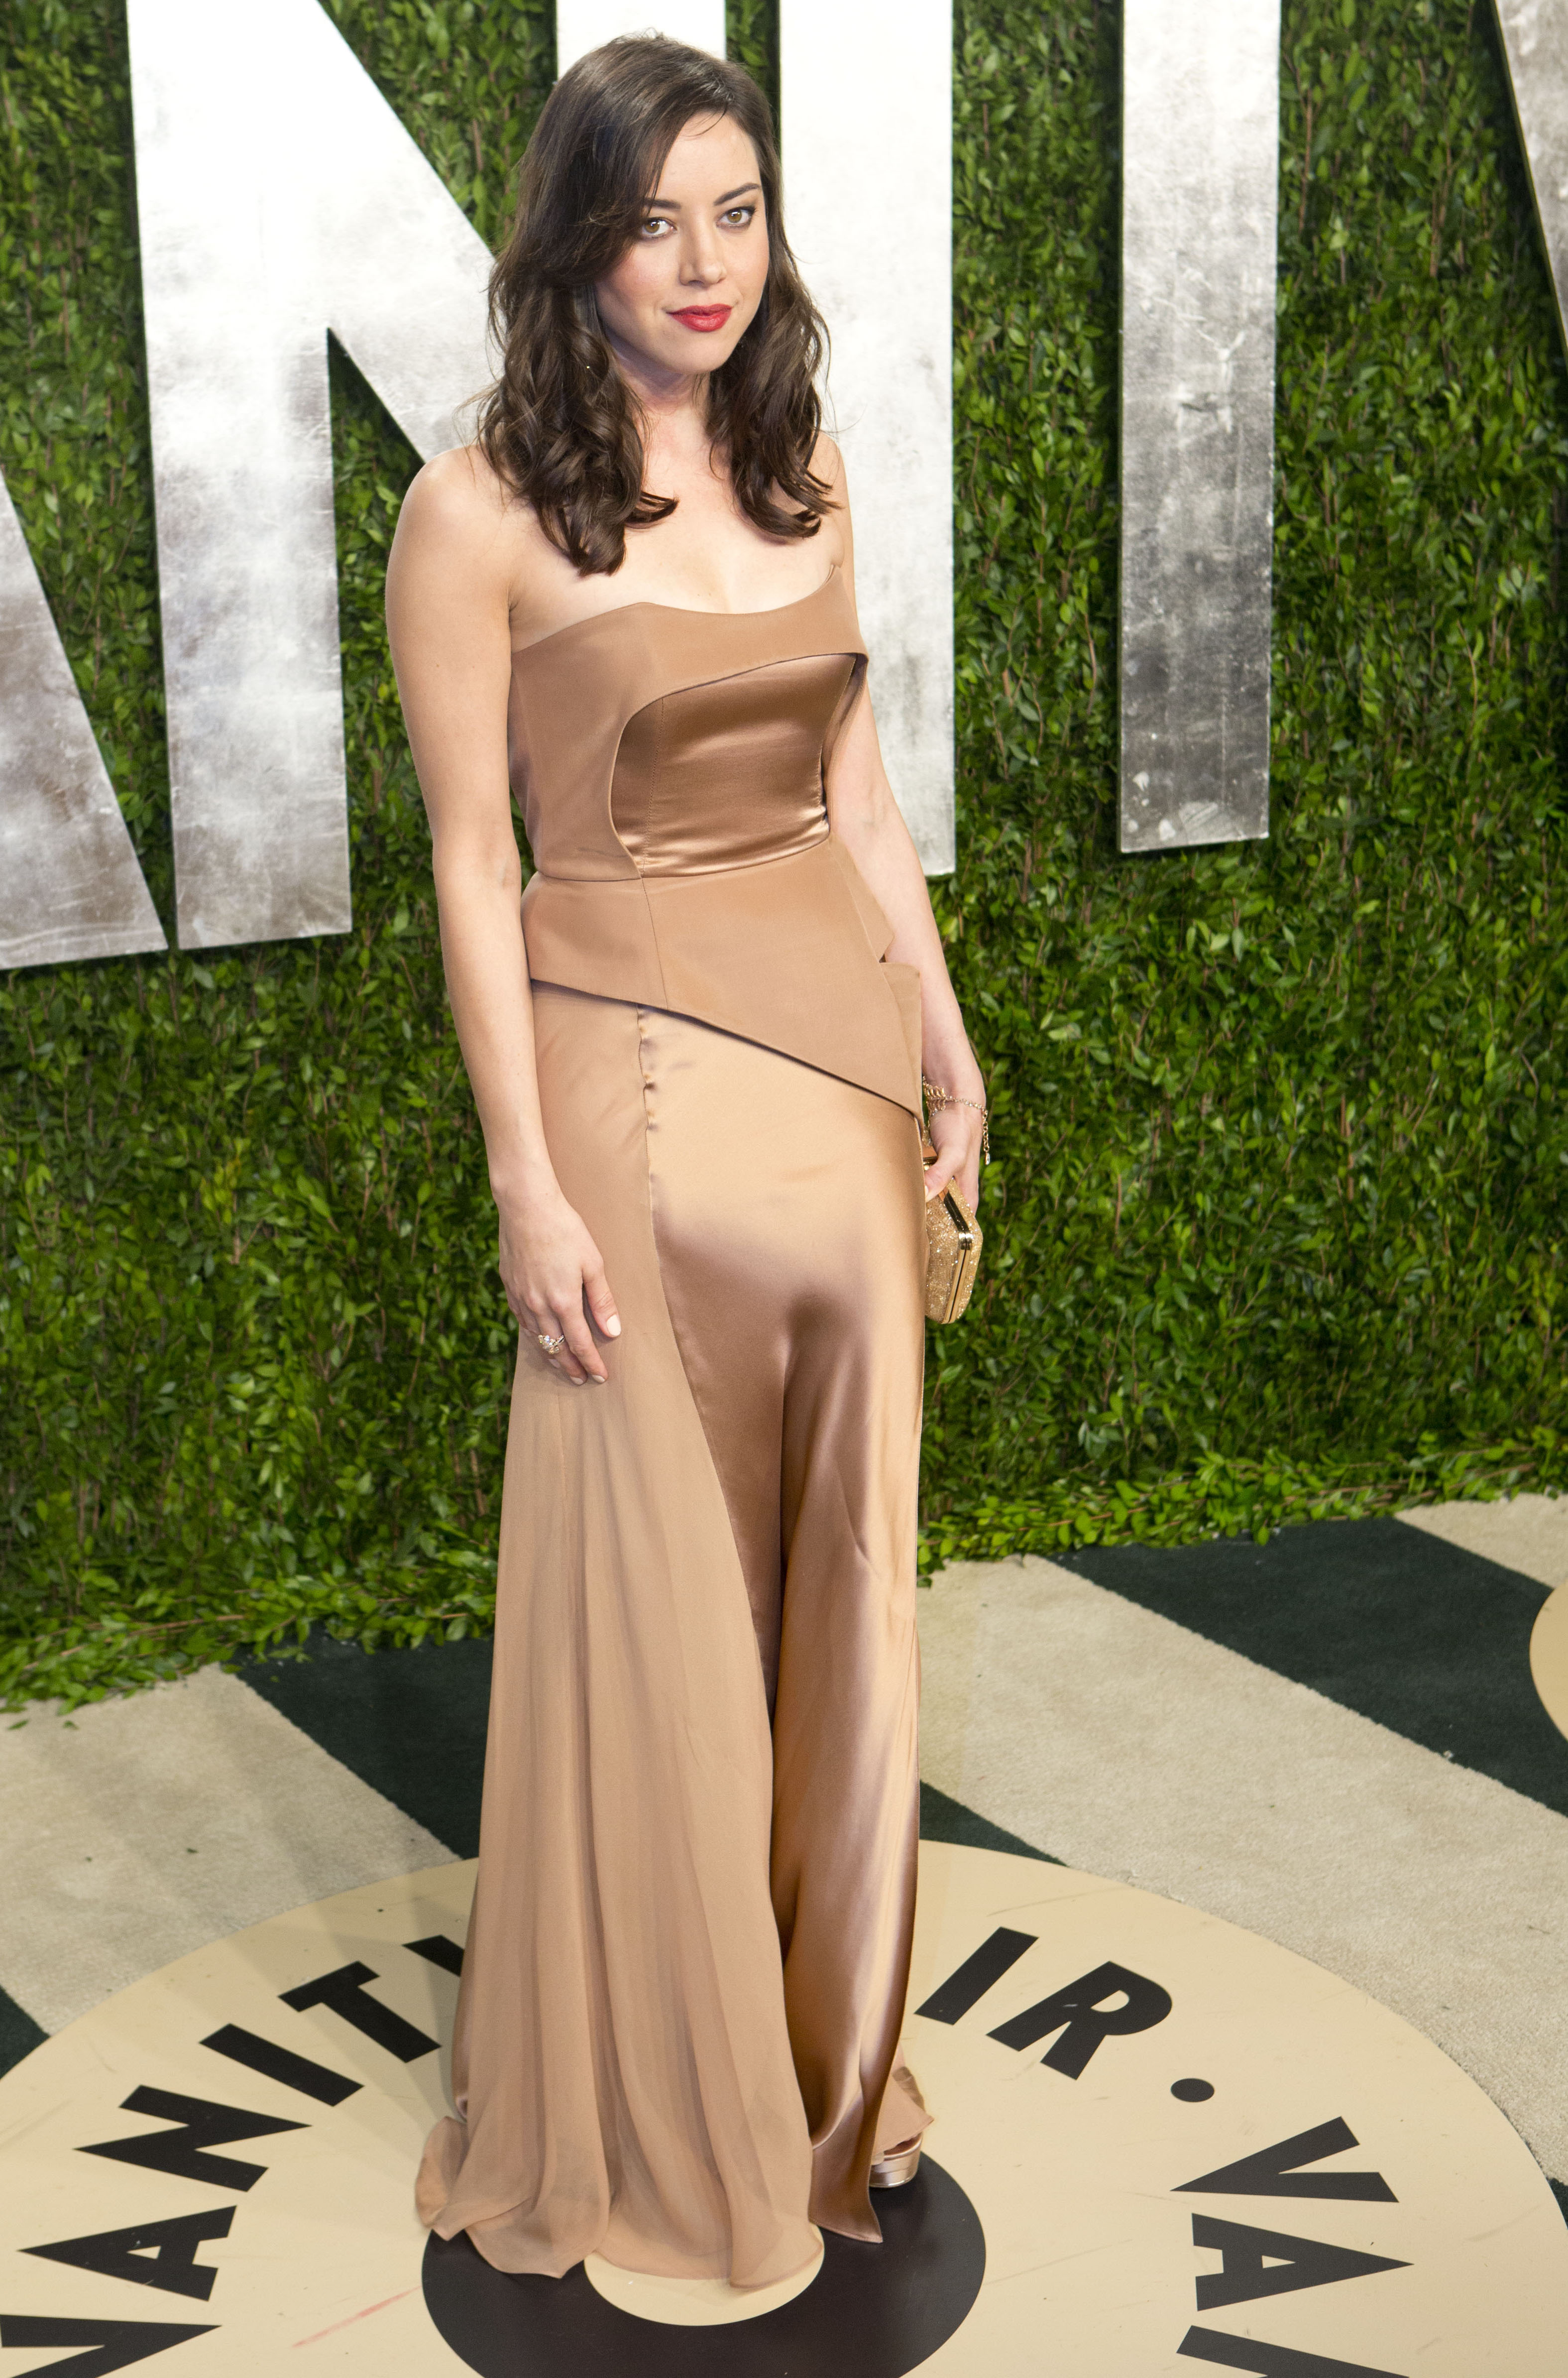 Aubrey Plaza arrived at the Vanity Fair Oscar party.